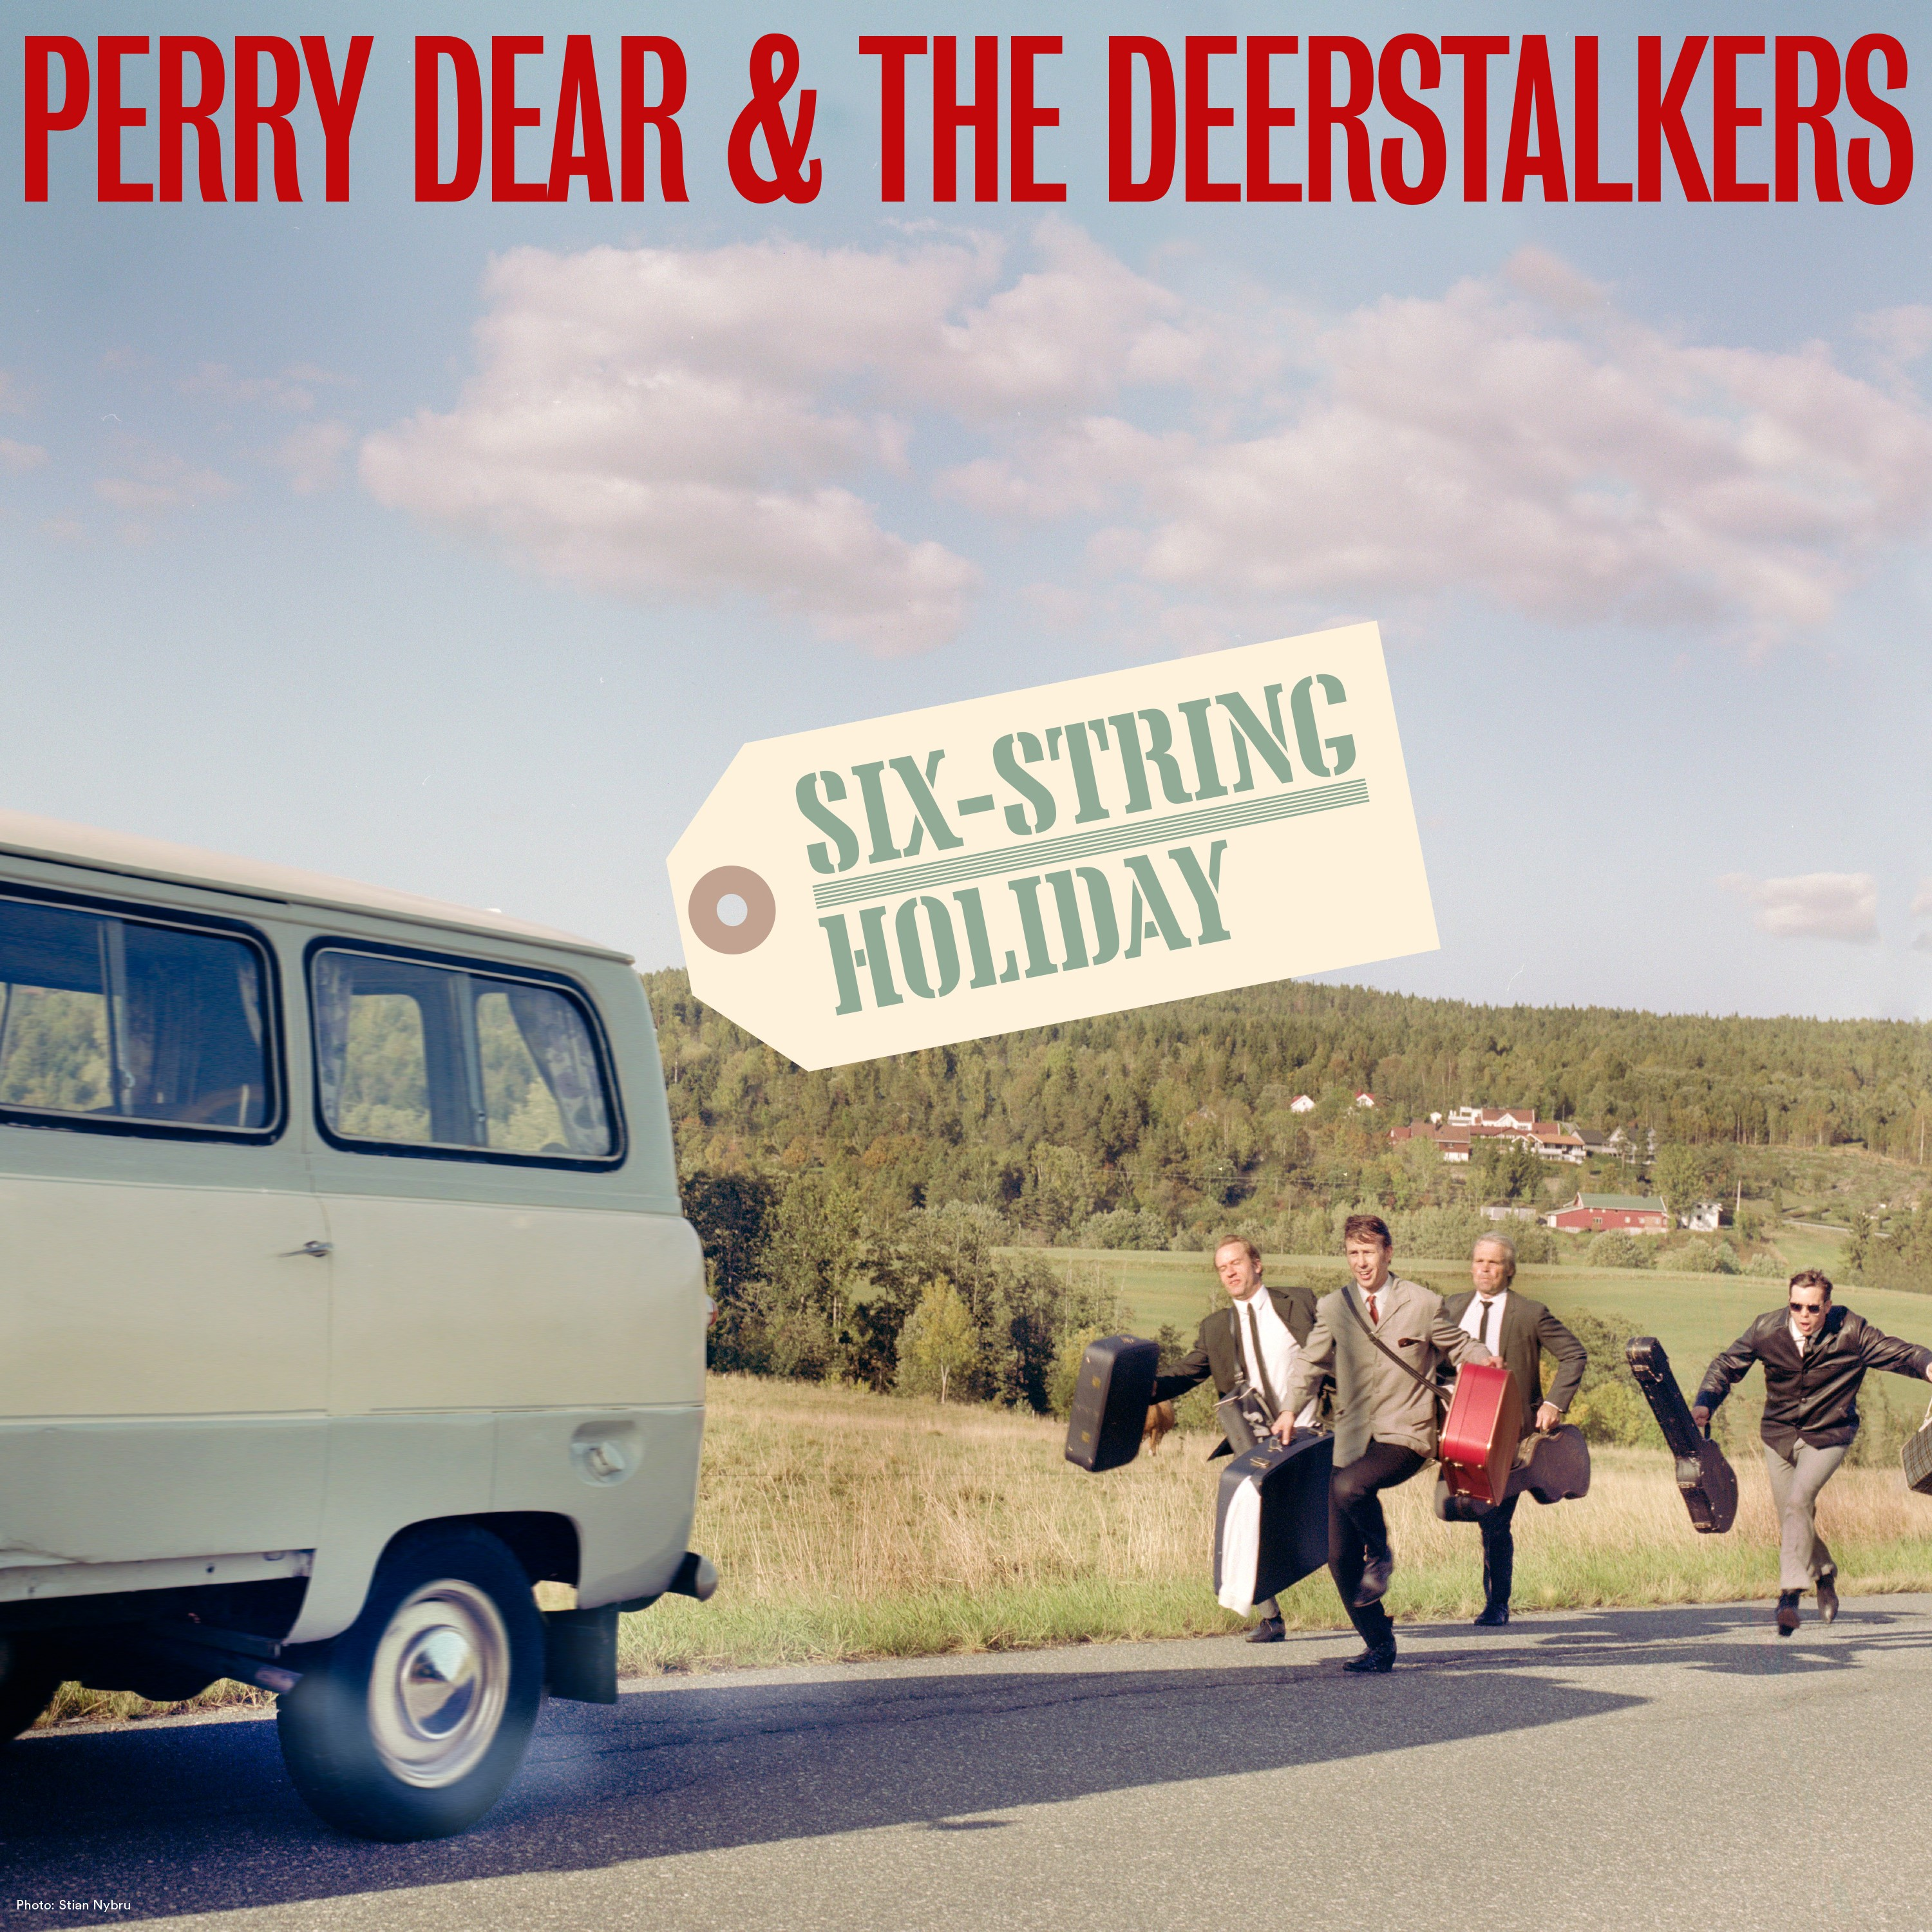 Perry Dear & The Deerstalkers - Six String Holiday [LP]